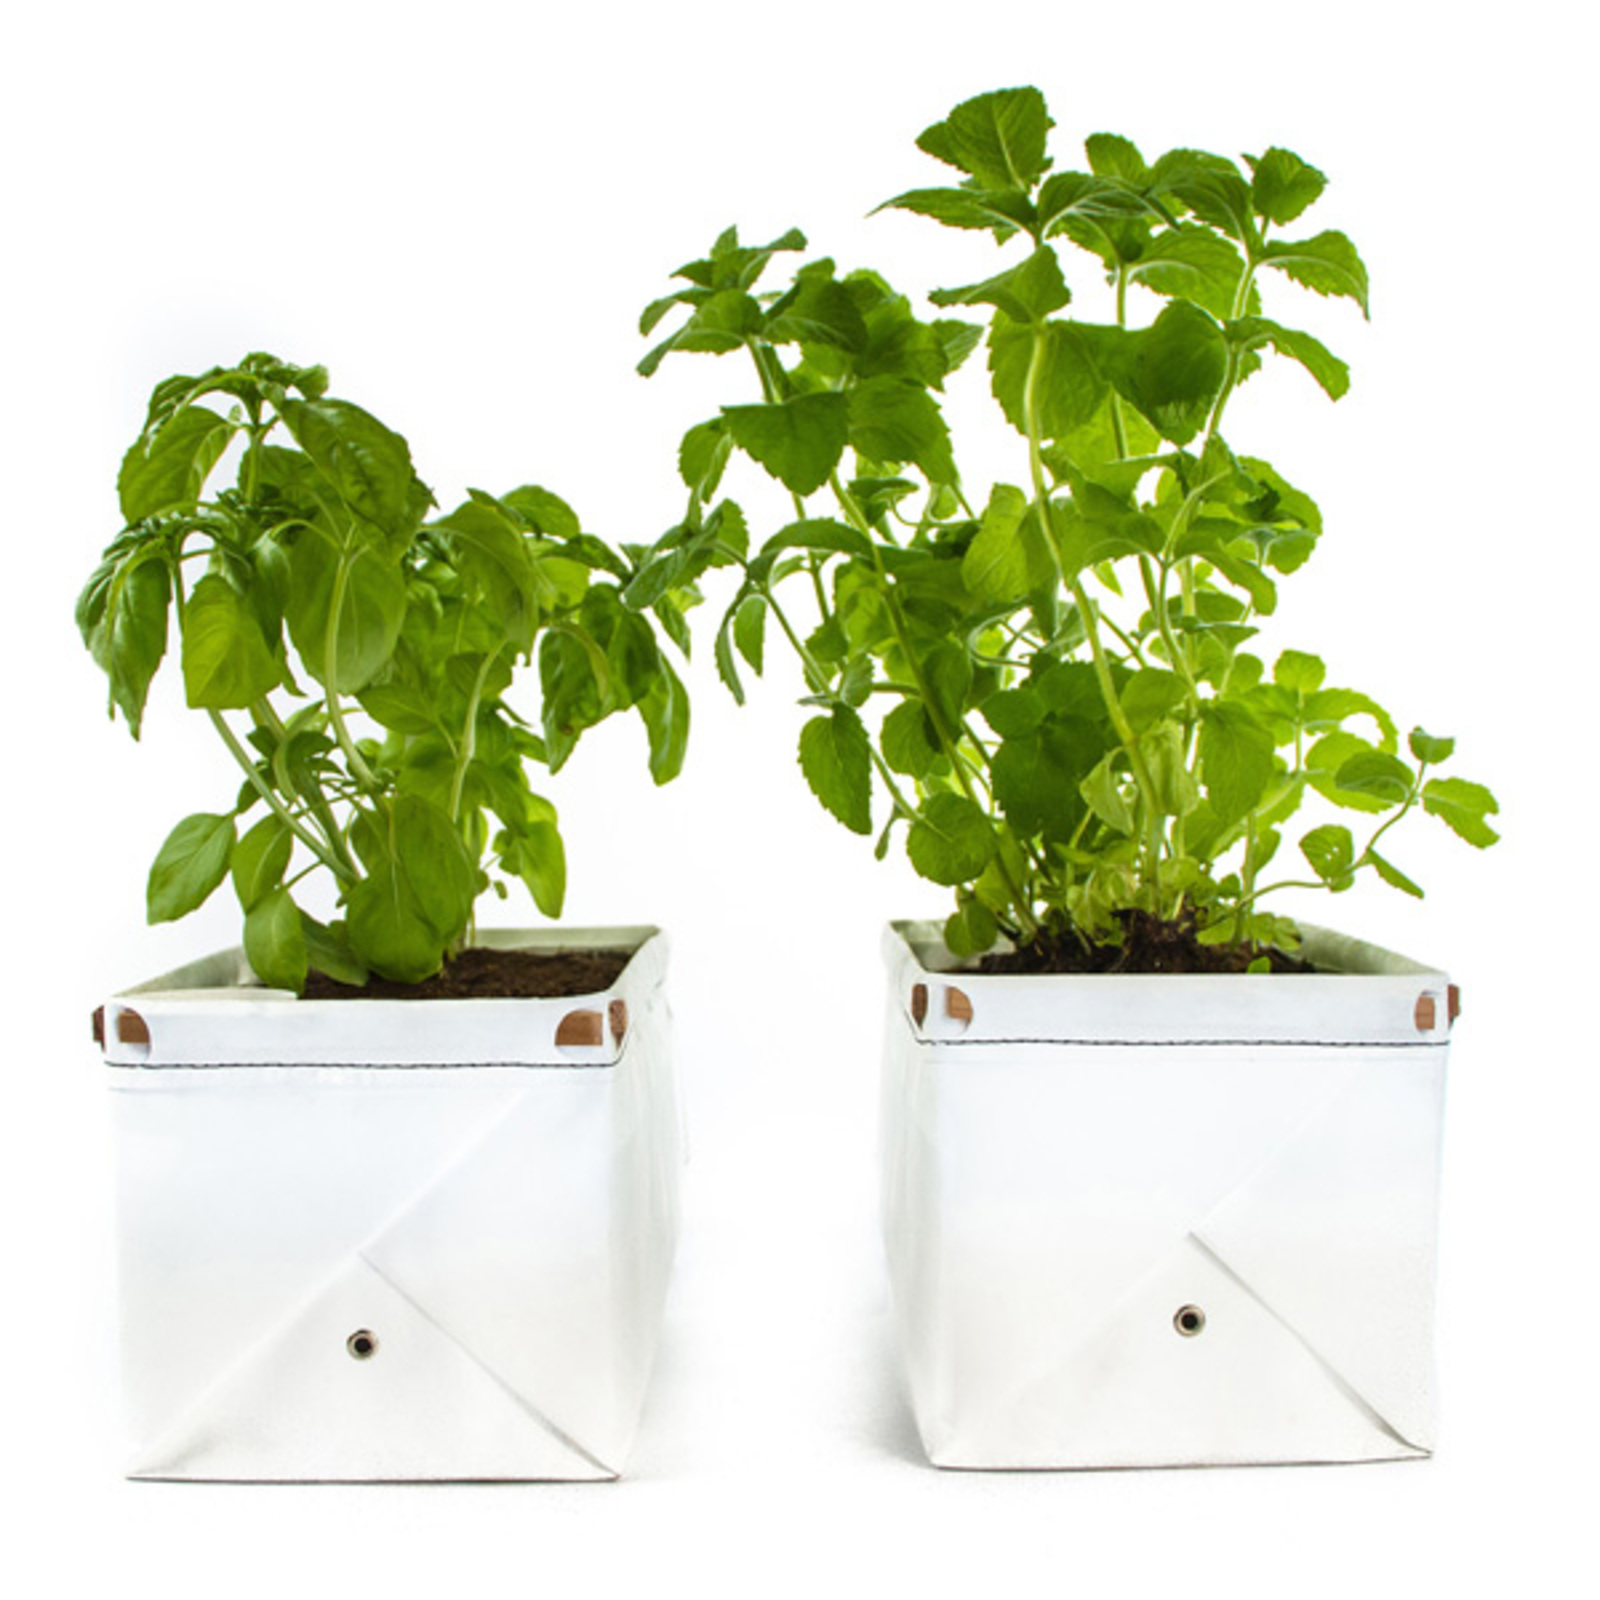 Herb Planters Inspiration With Cool Herb Planters Image